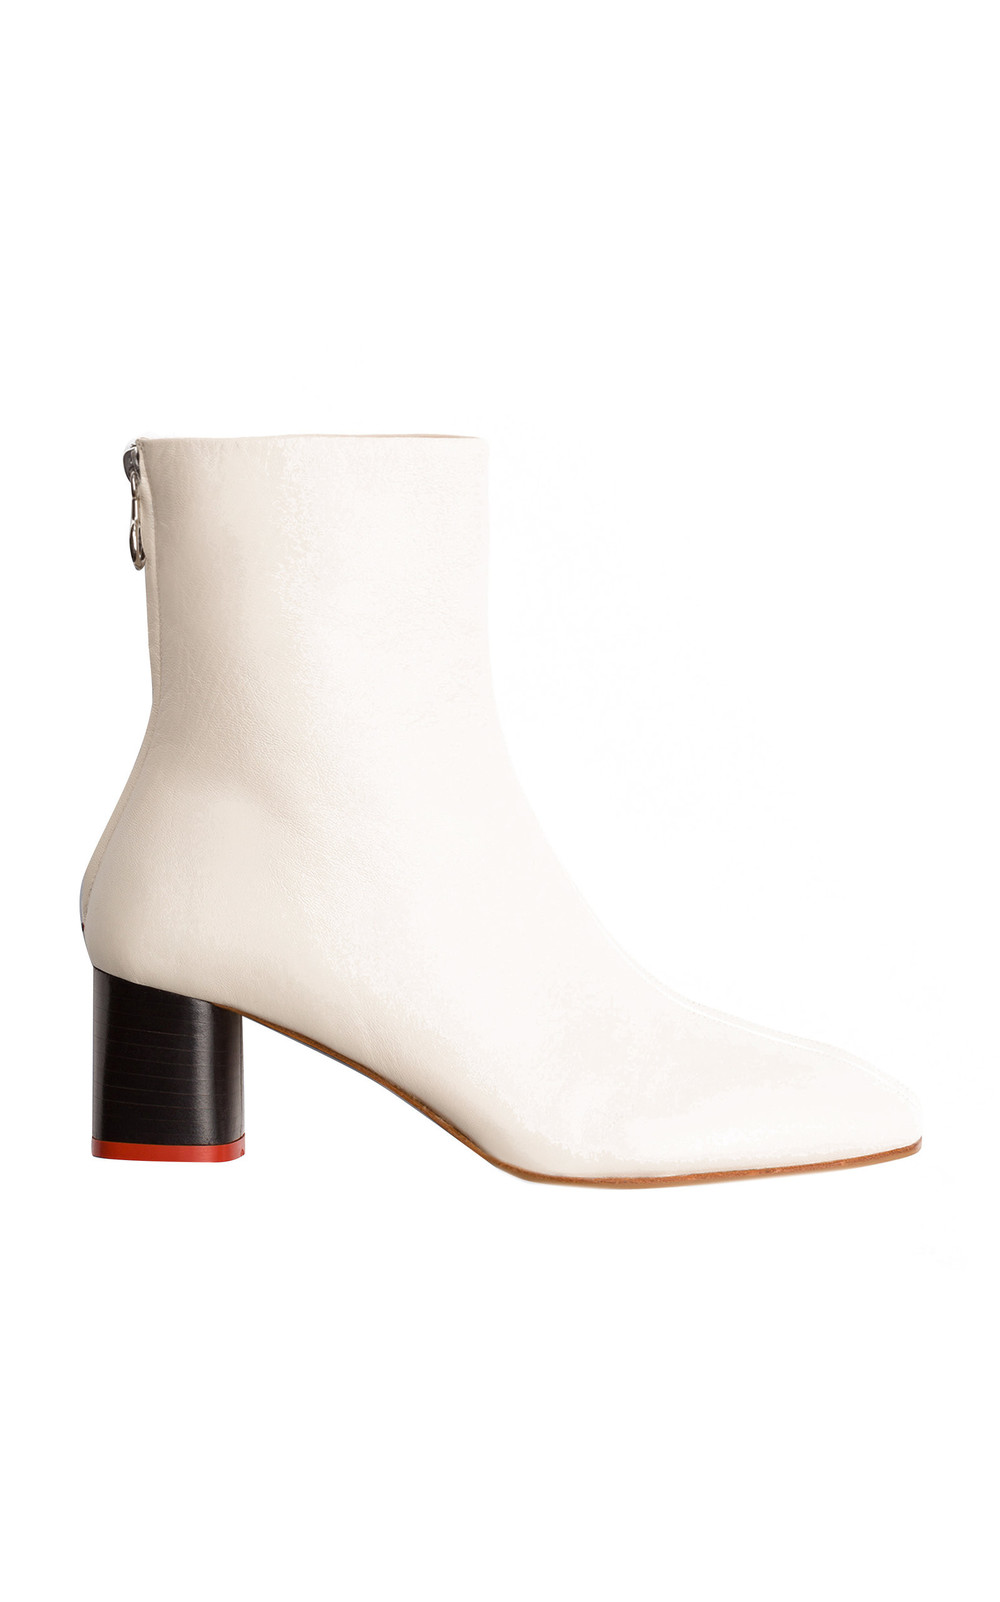 Aeyde Florence Booties in white